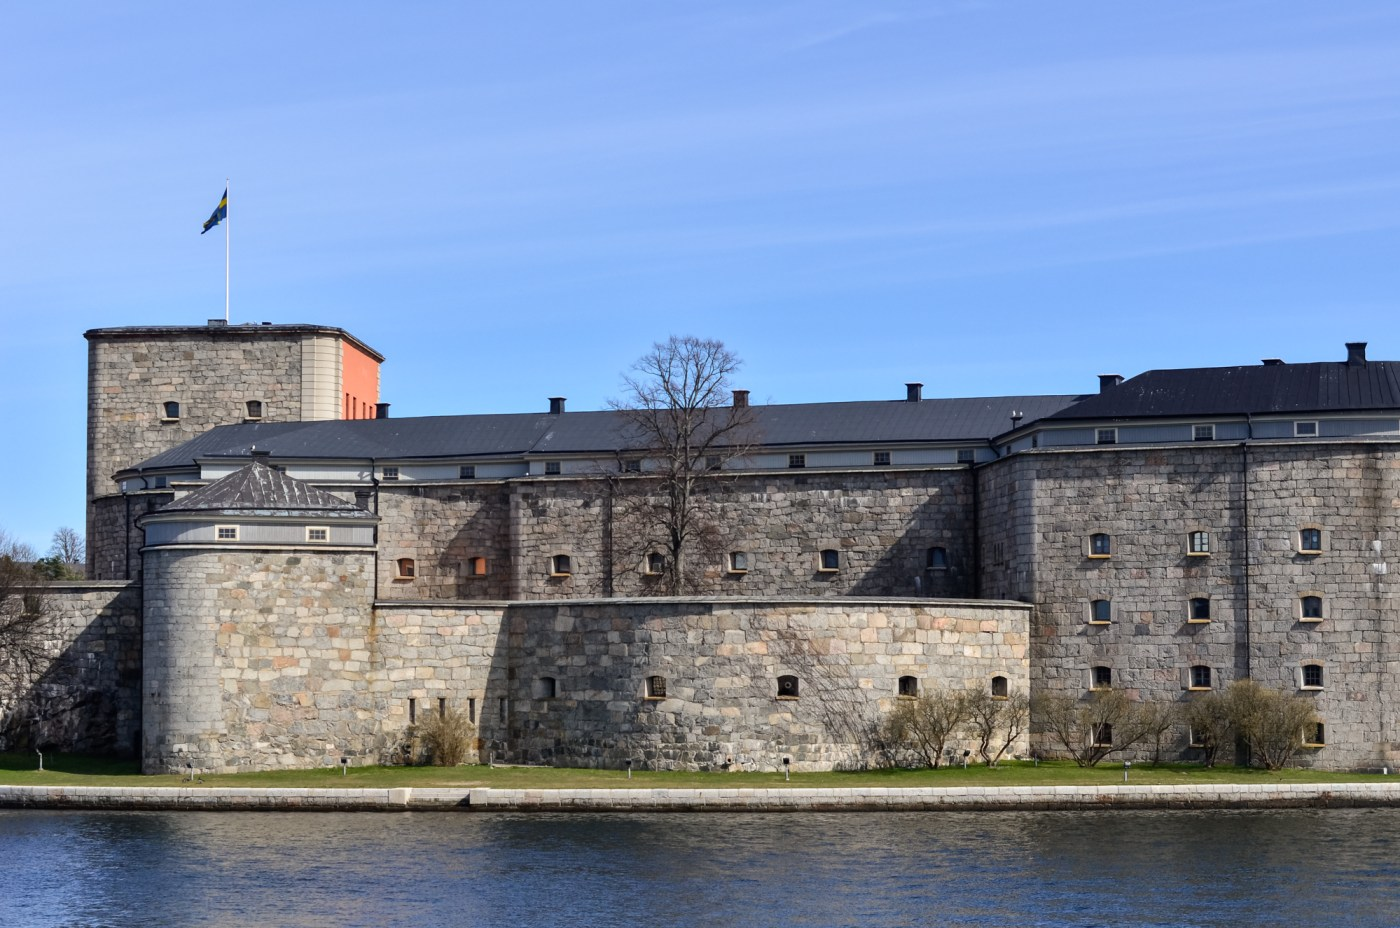 Vaxholm fortress, Sweden